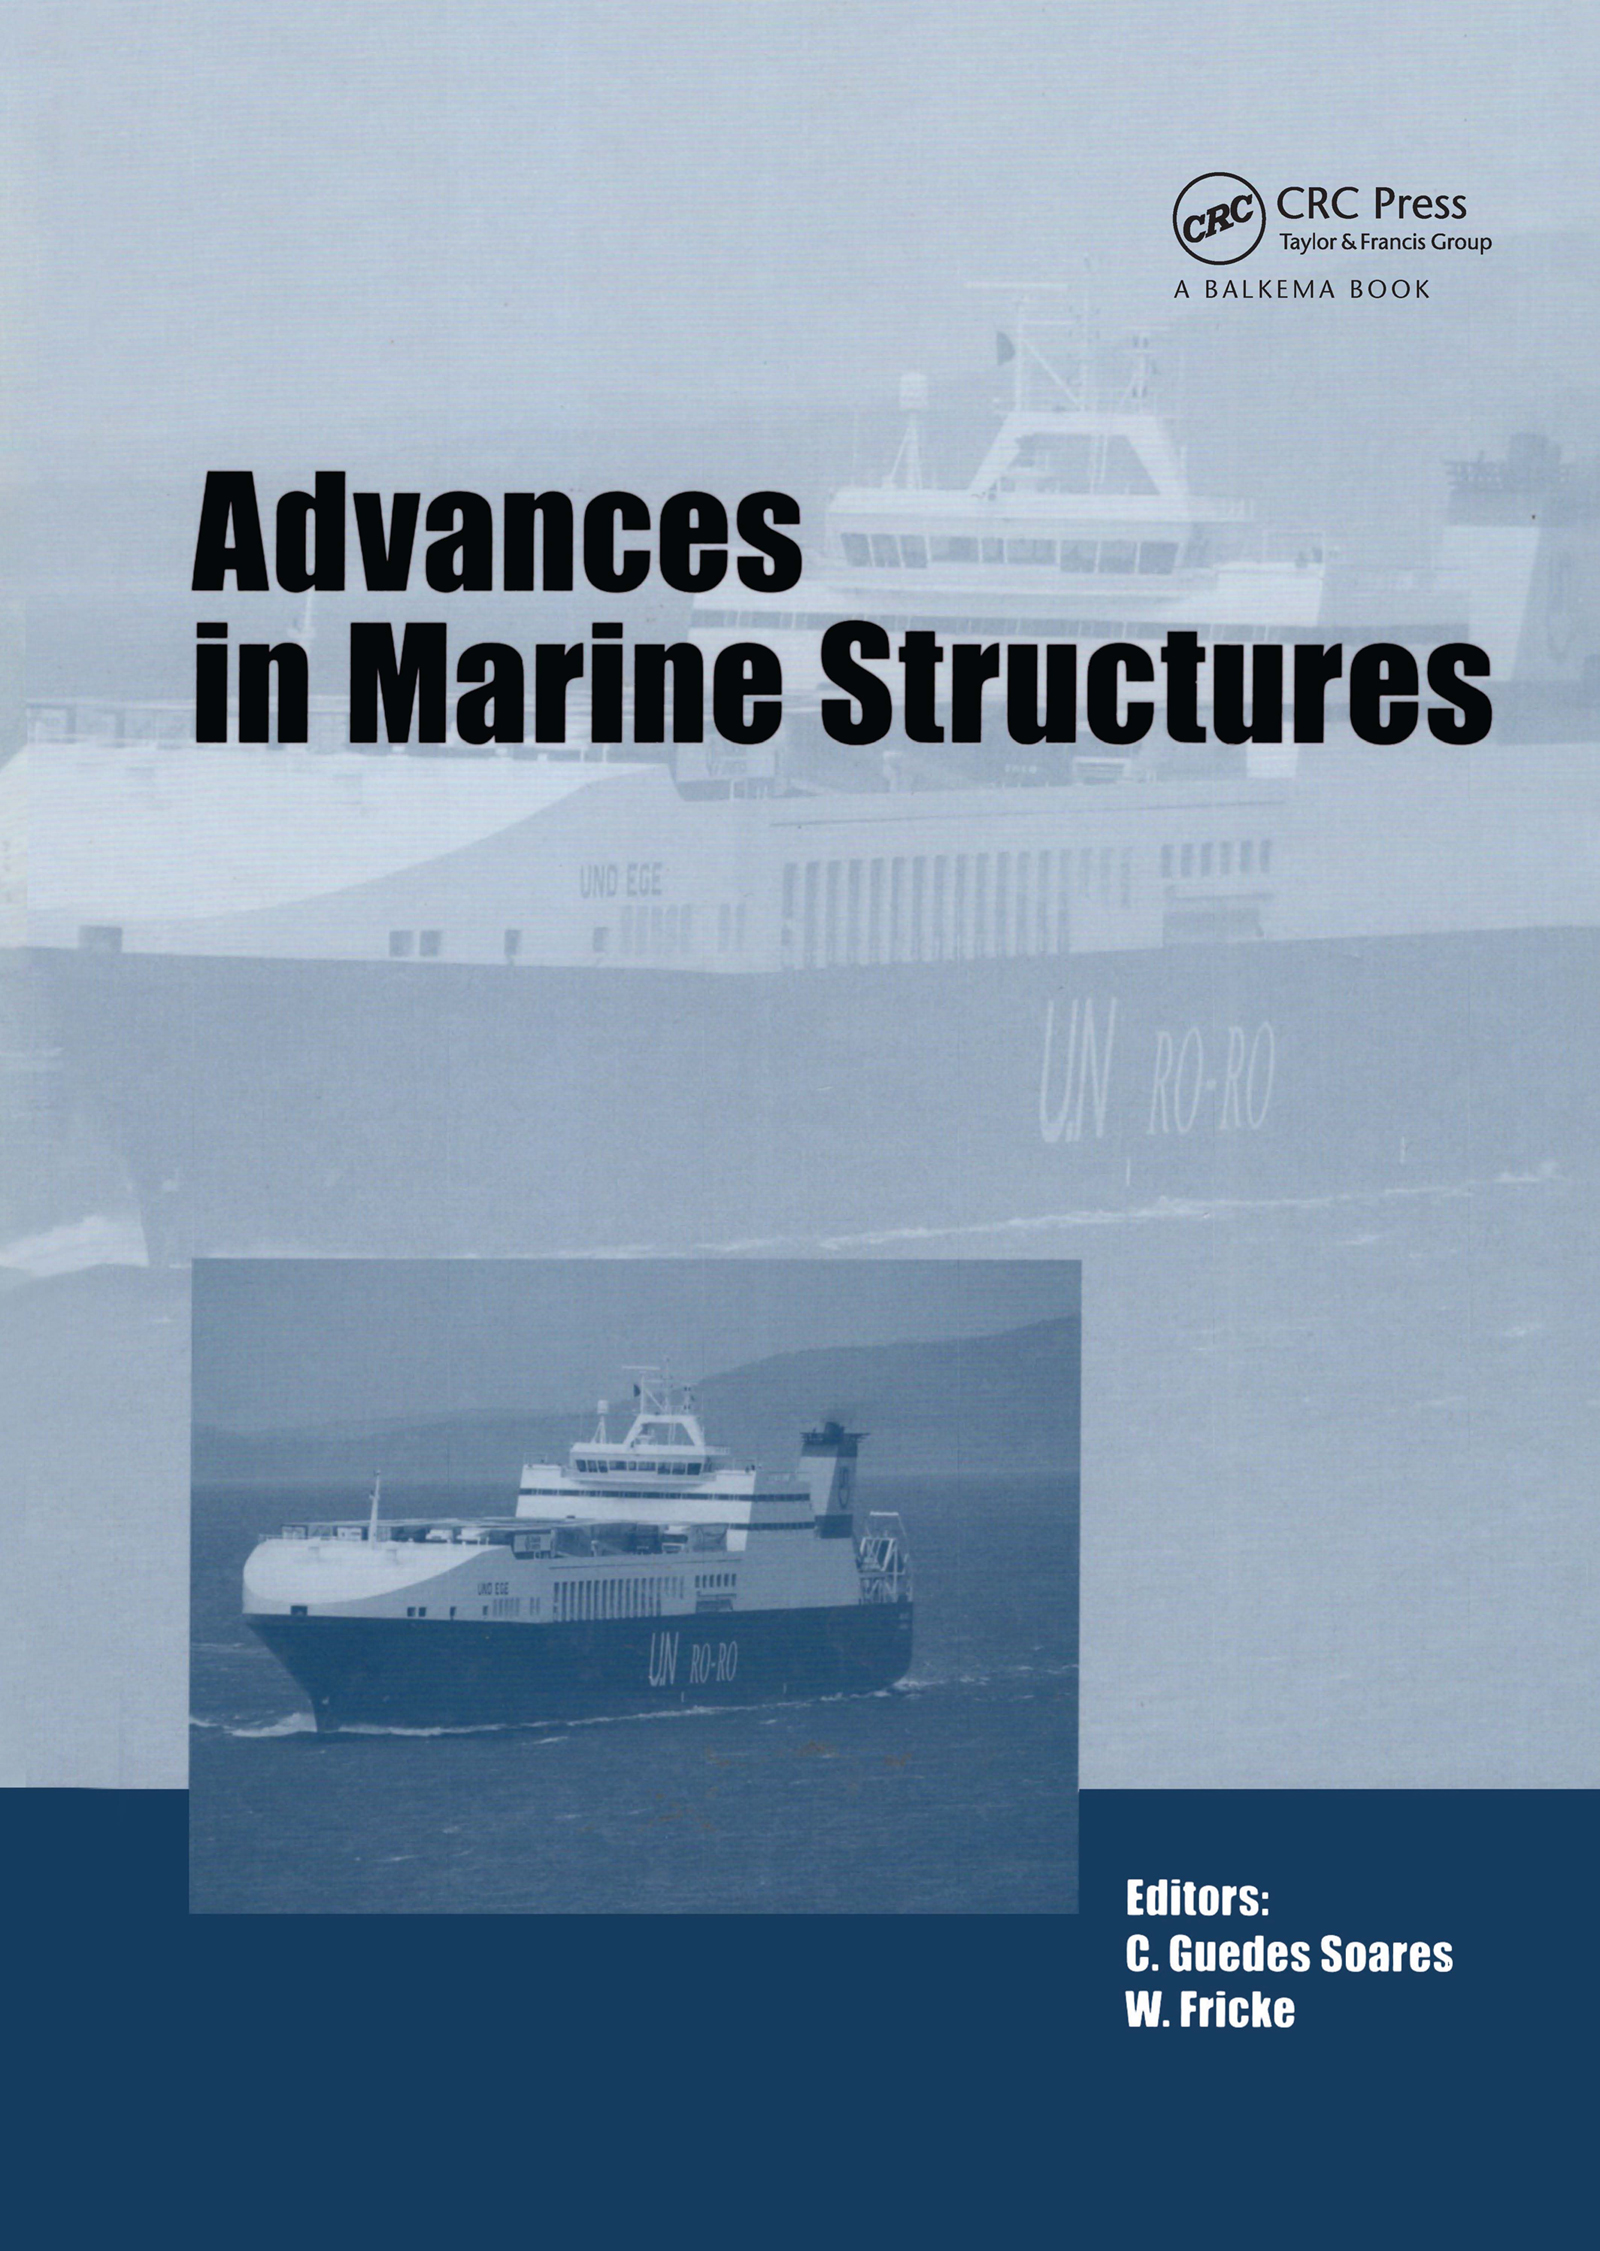 Advances in Marine Structures: 1st Edition (Pack - Book and CD) book cover